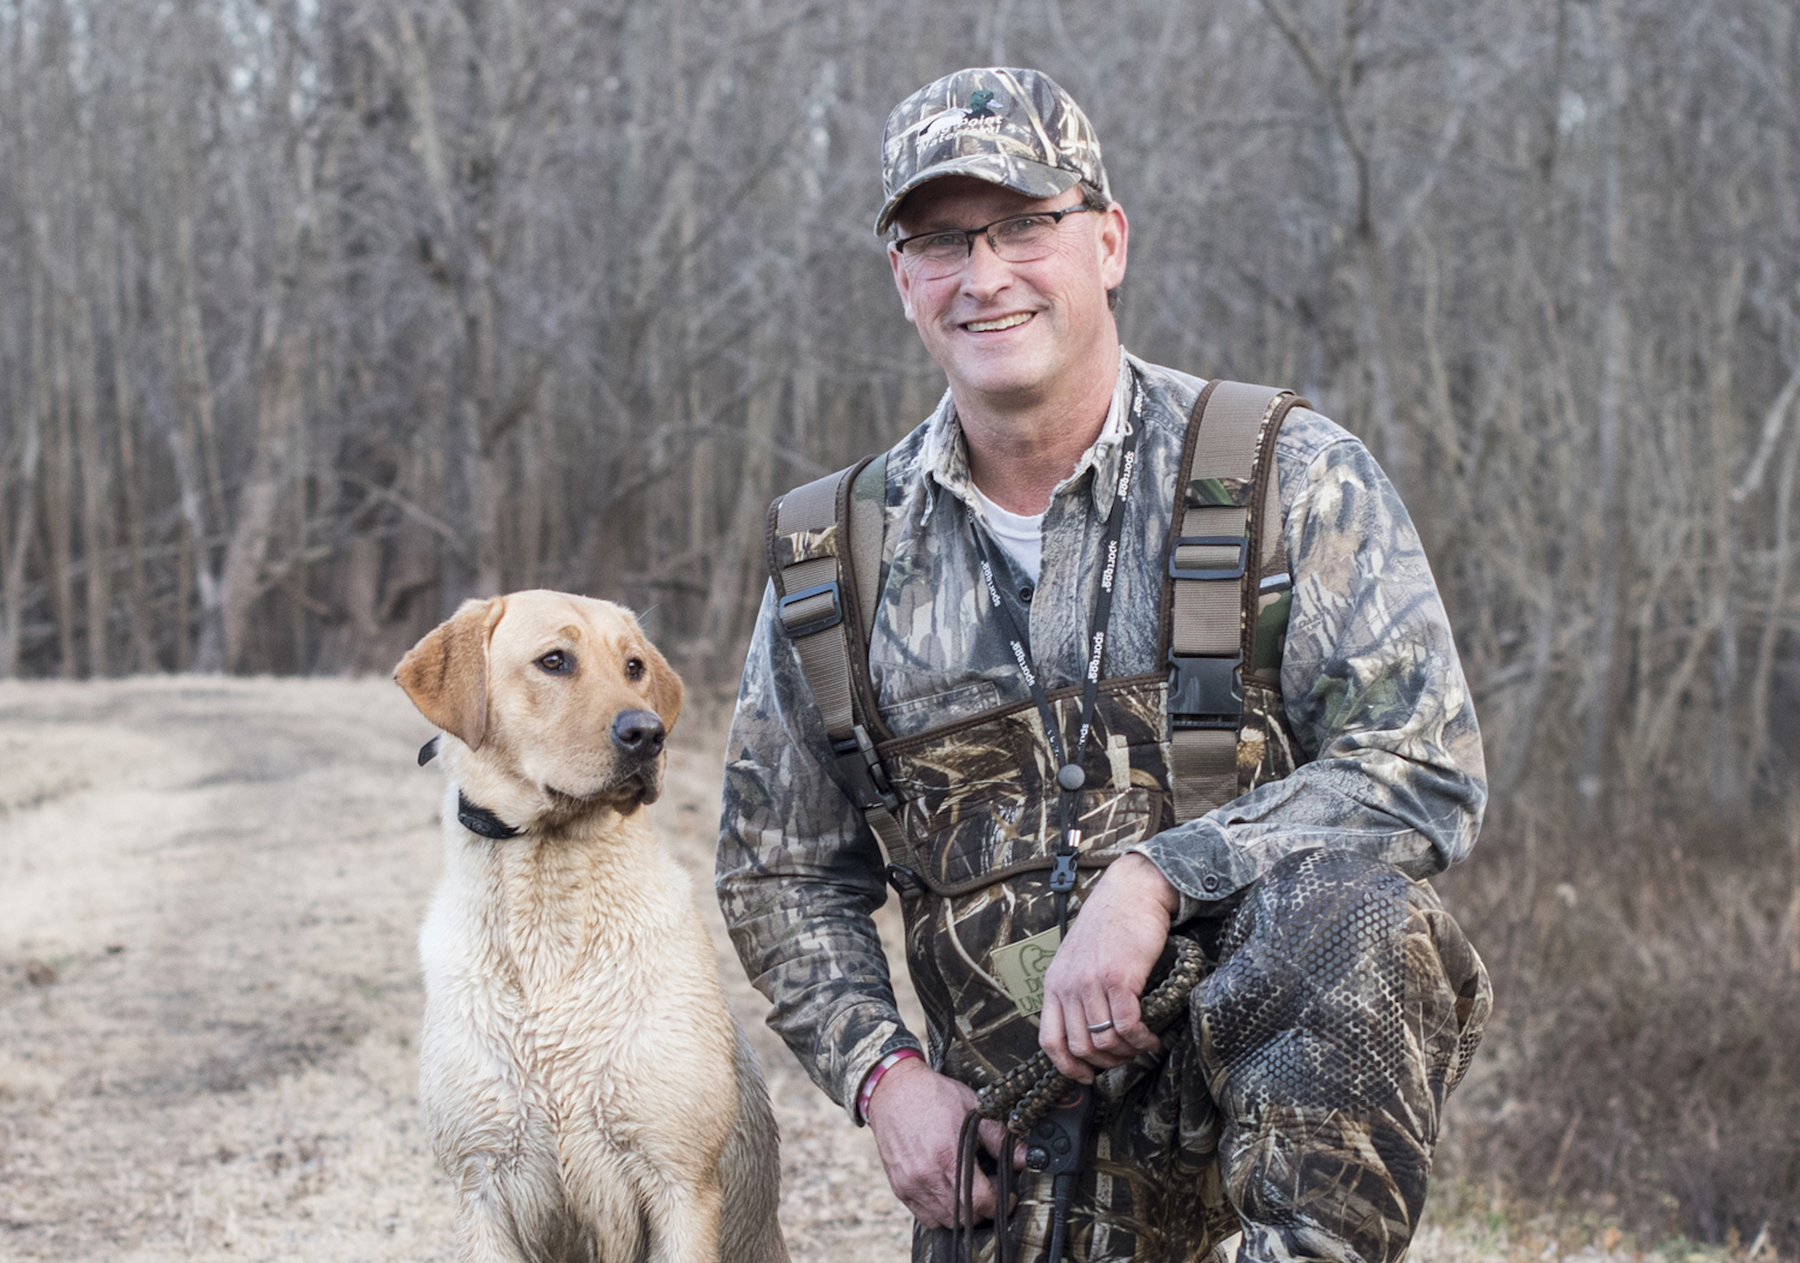 Aaron Yetter and his dog Piper